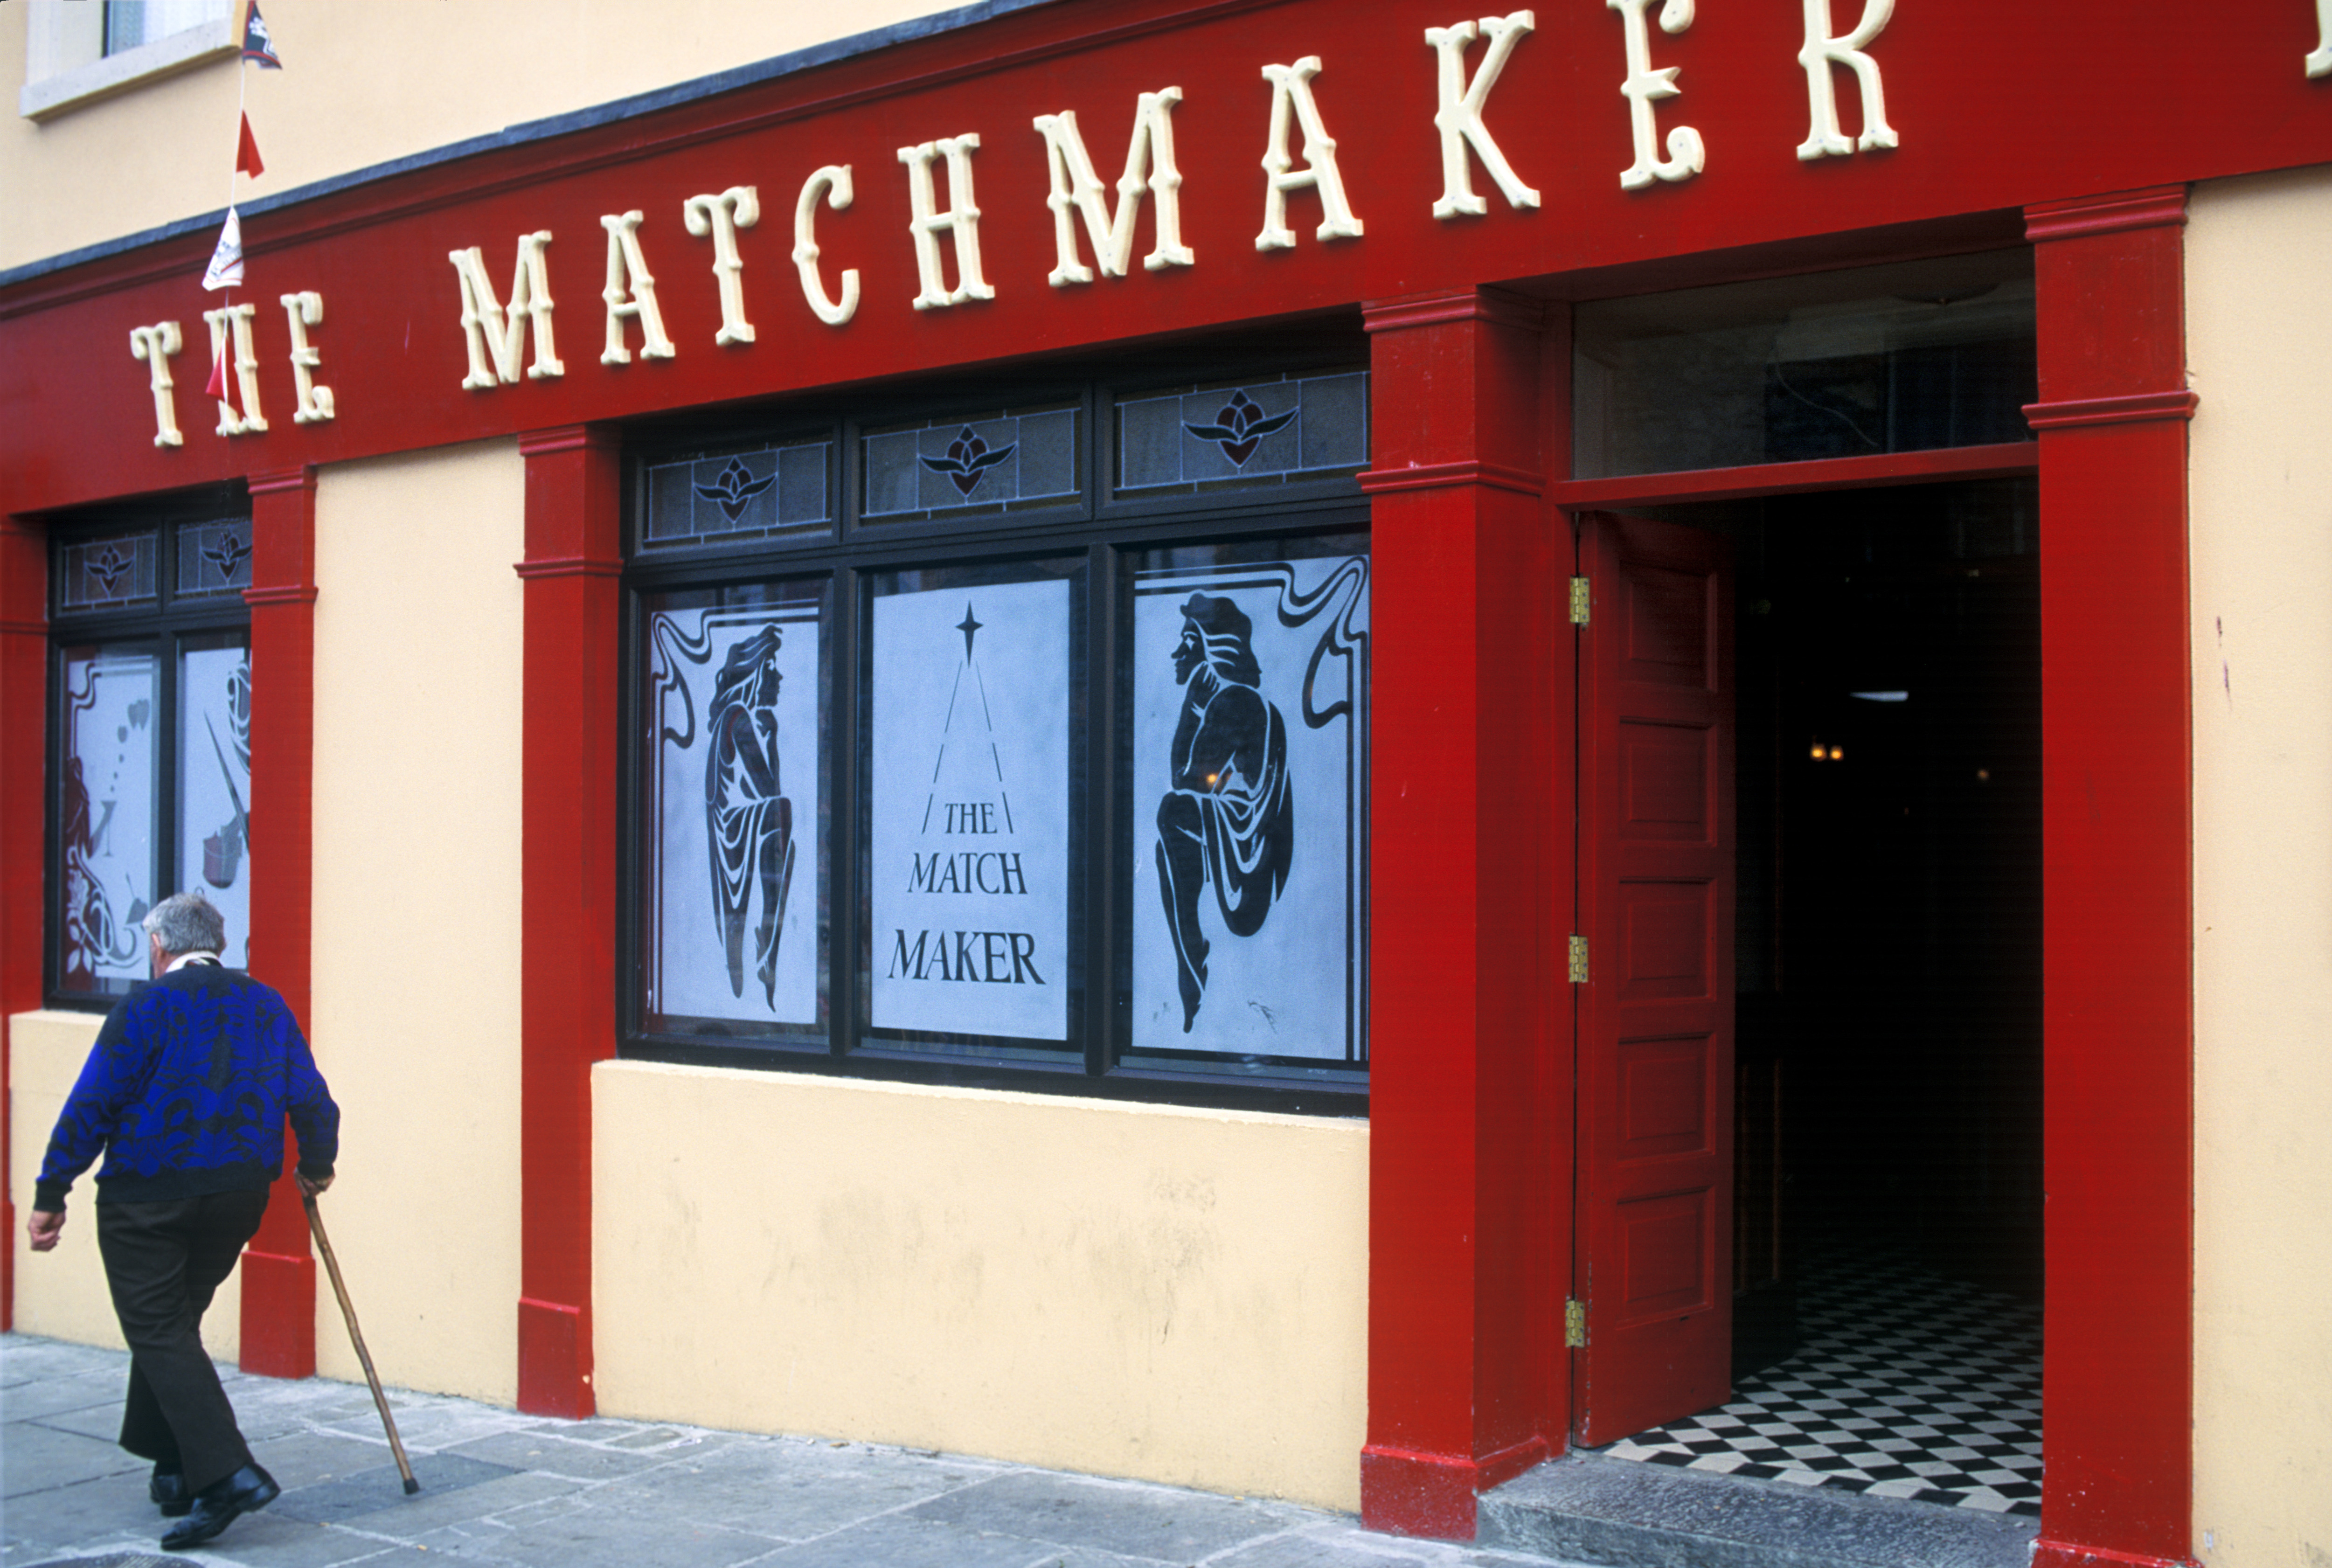 The Matchmaker pub in Listoonvarna, home of the annual